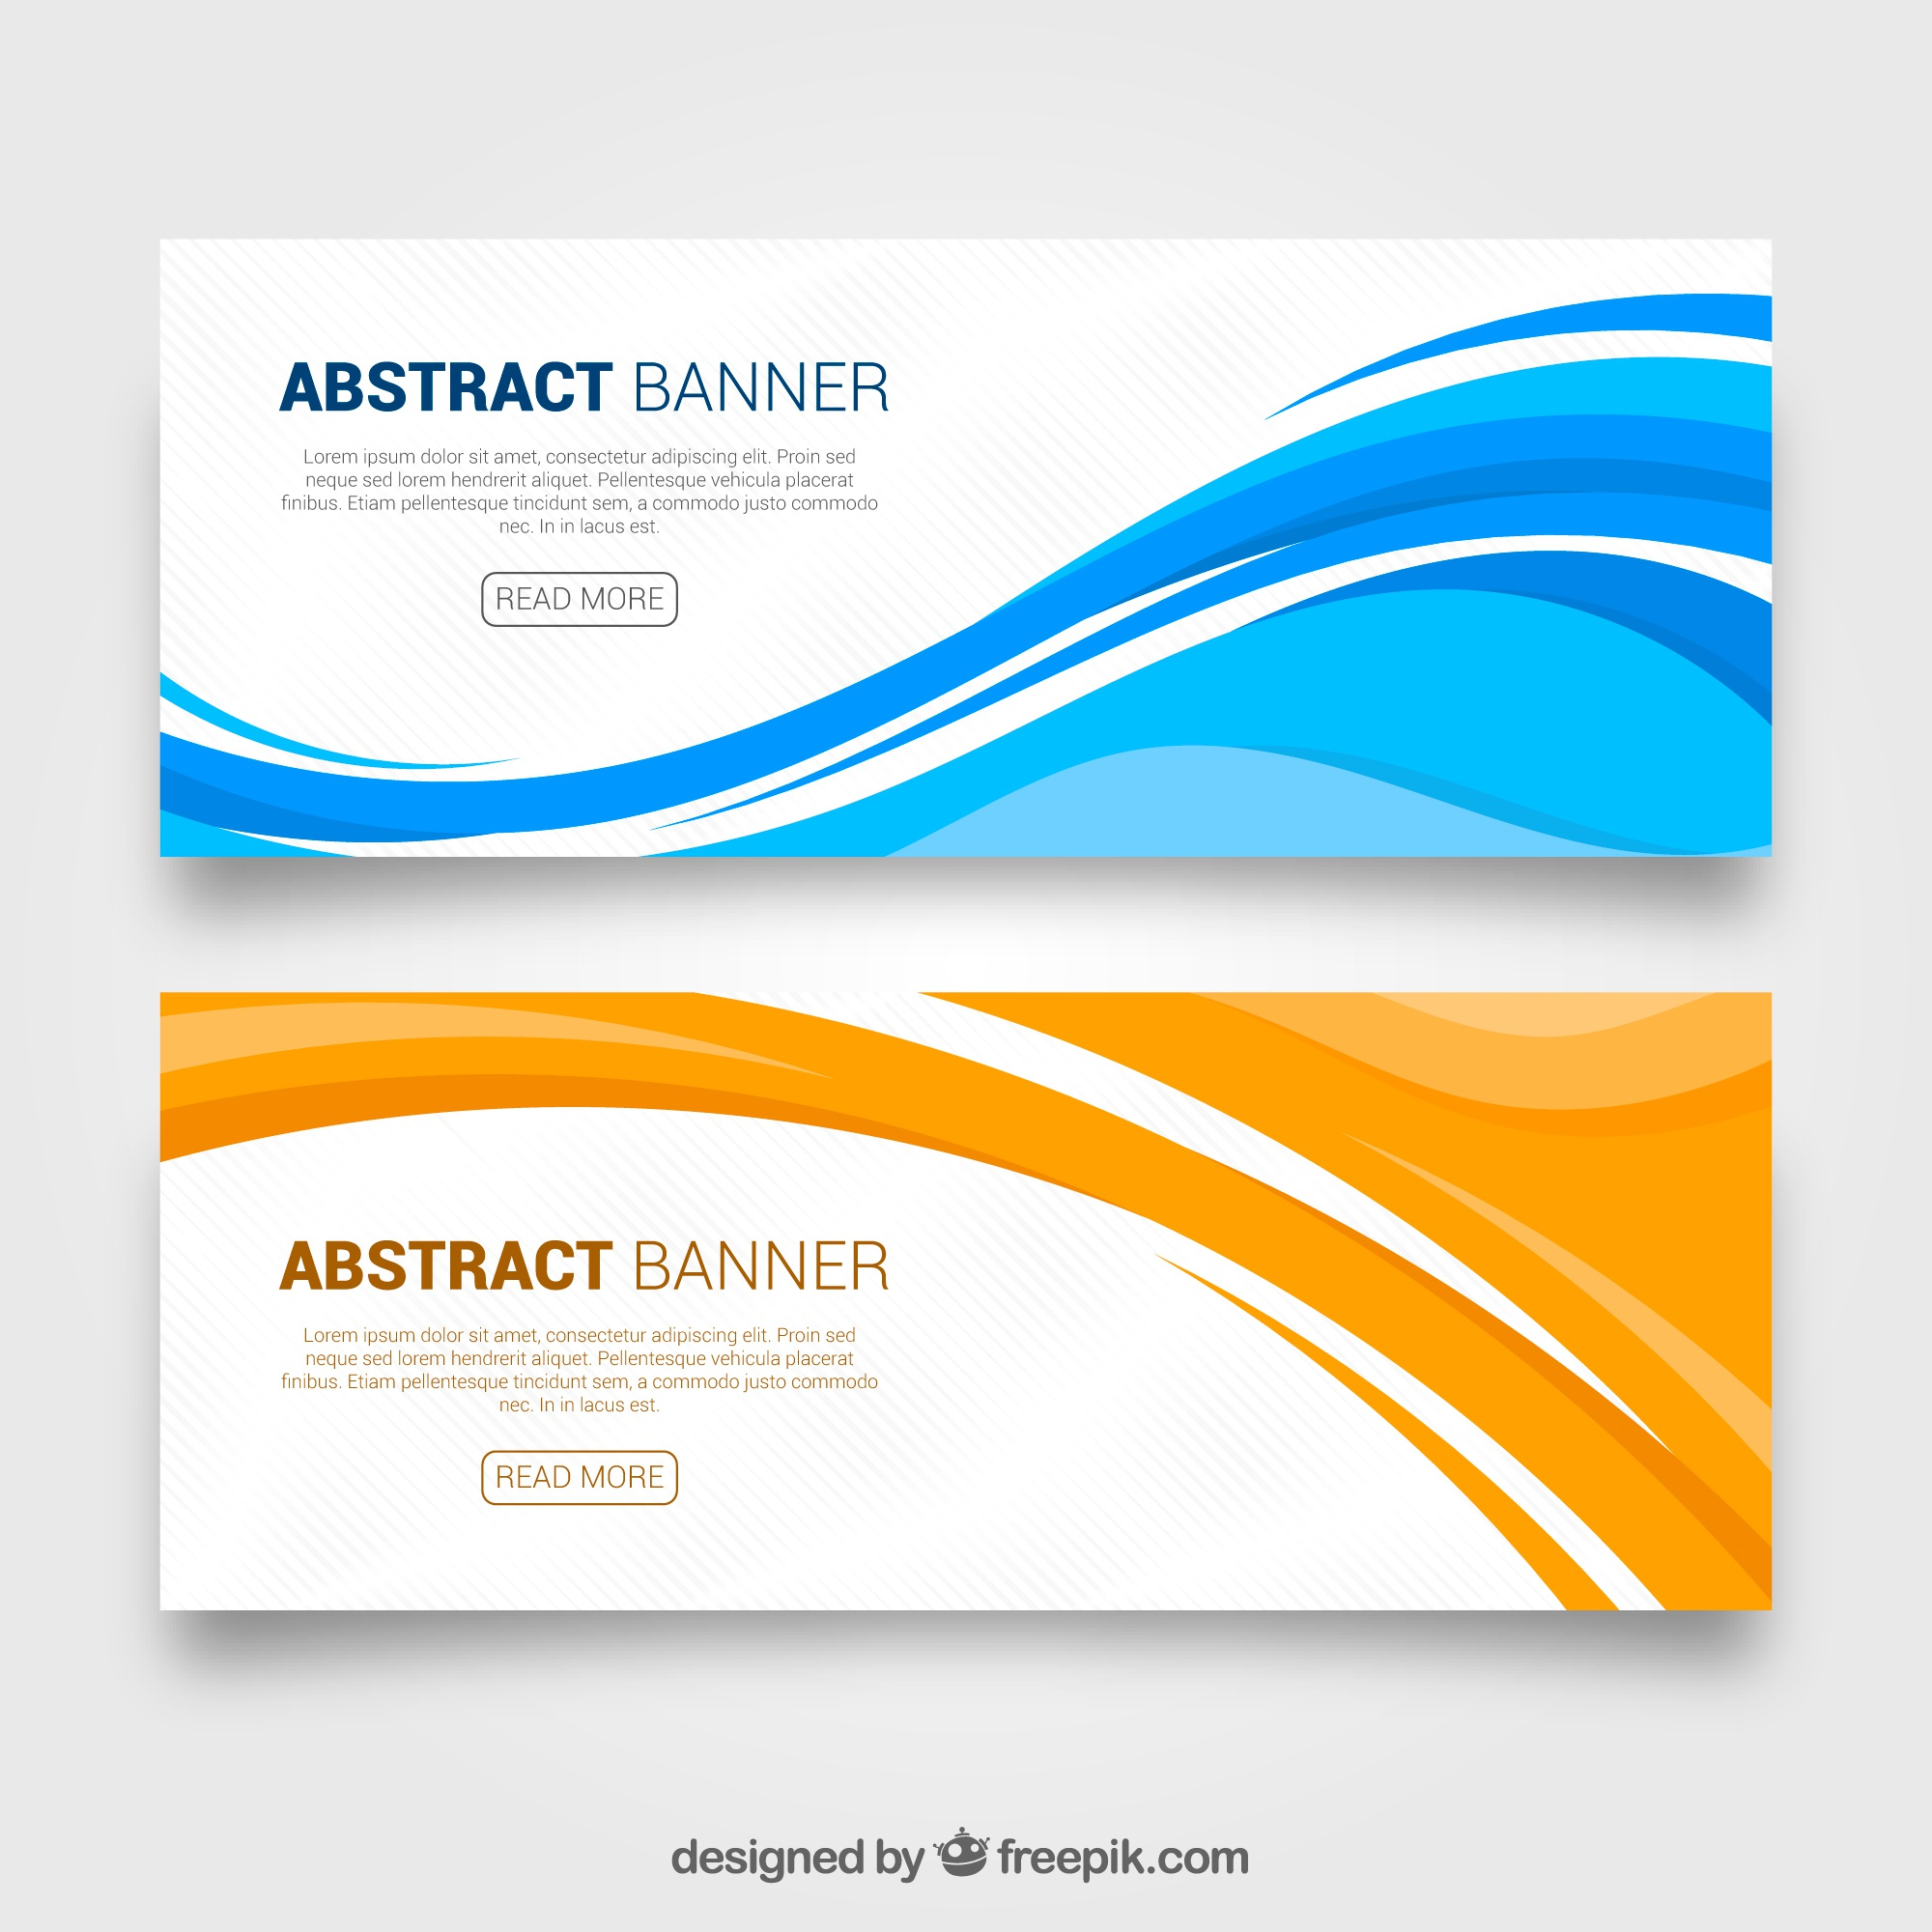 Abstracte golf banners